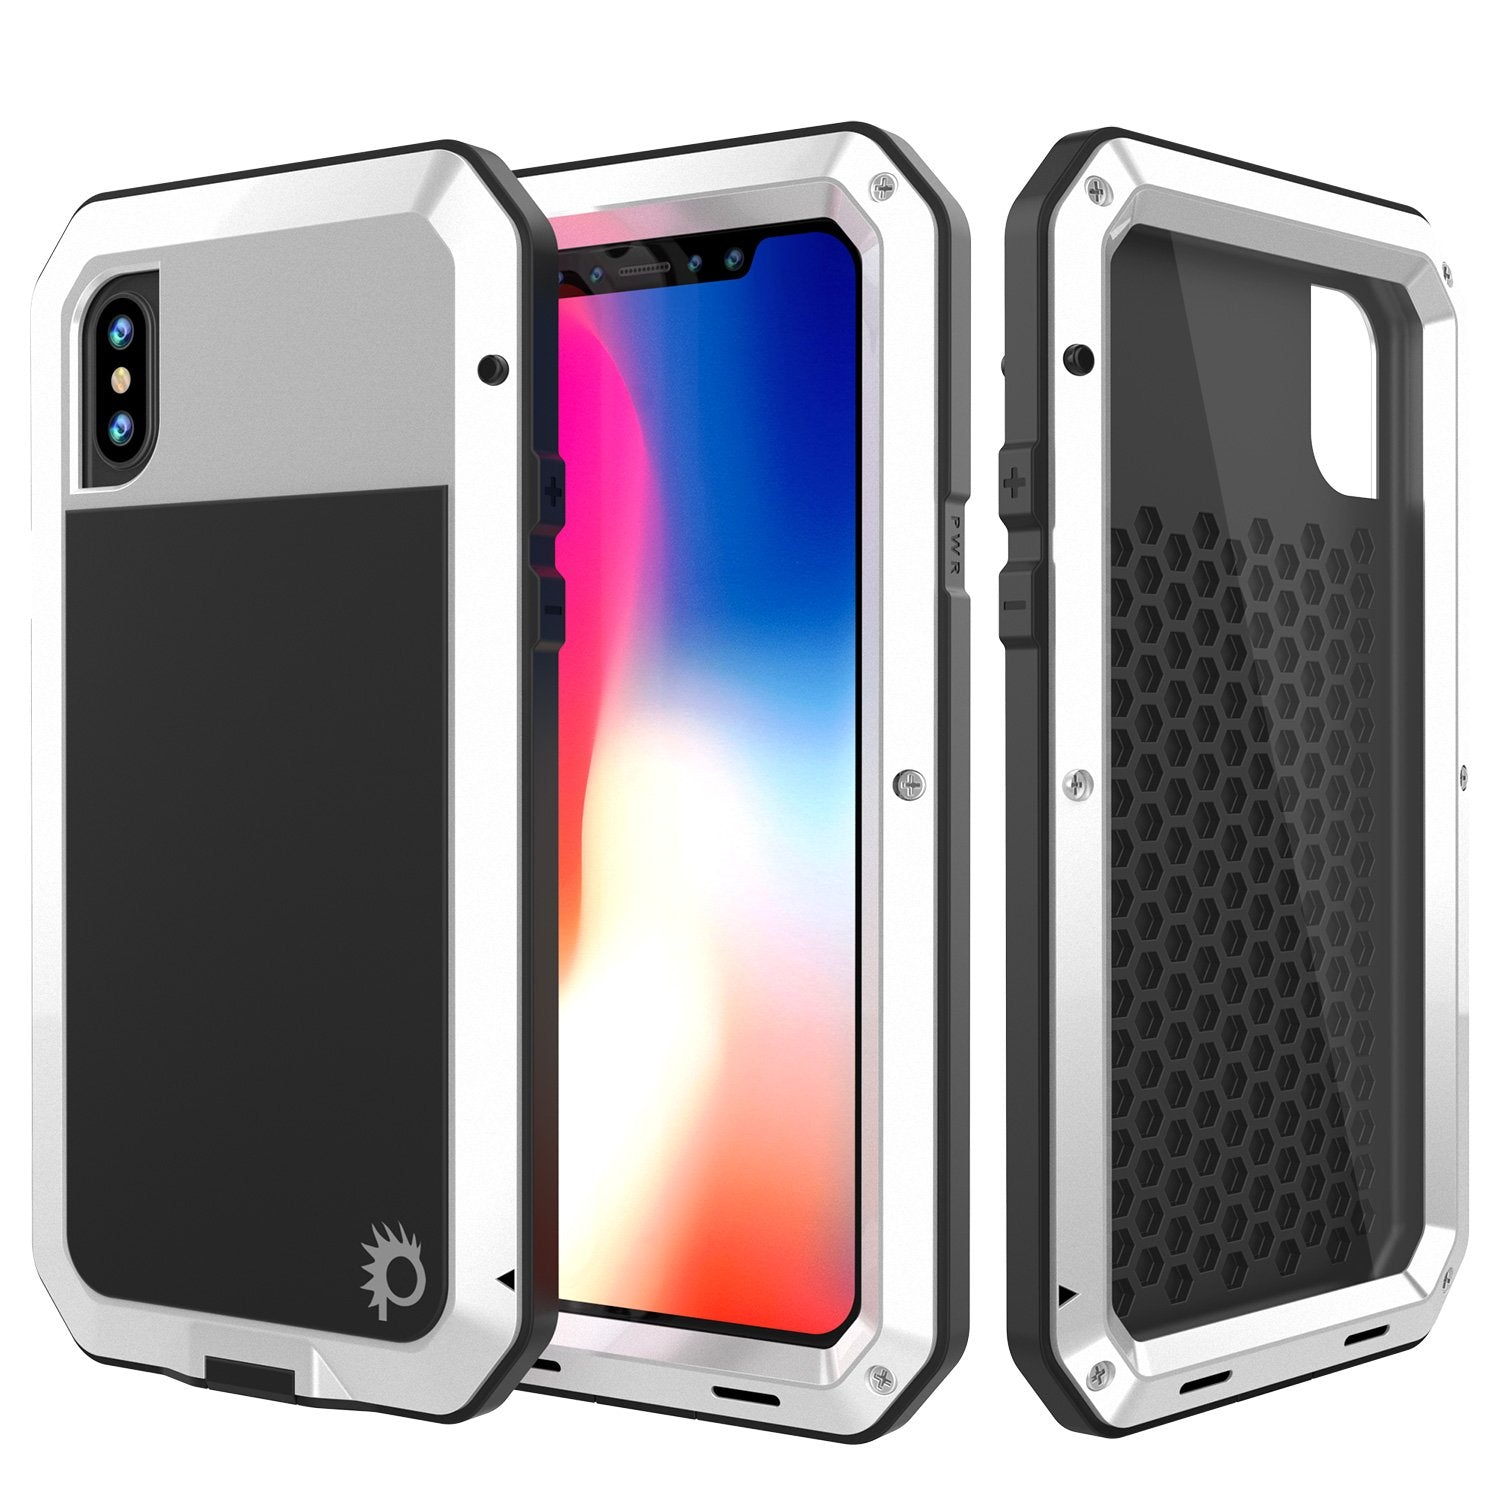 iPhone X Metal Case, Heavy Duty Military Grade Rugged White Armor Cover [shock proof] Hybrid Full Body Hard Aluminum & TPU Design